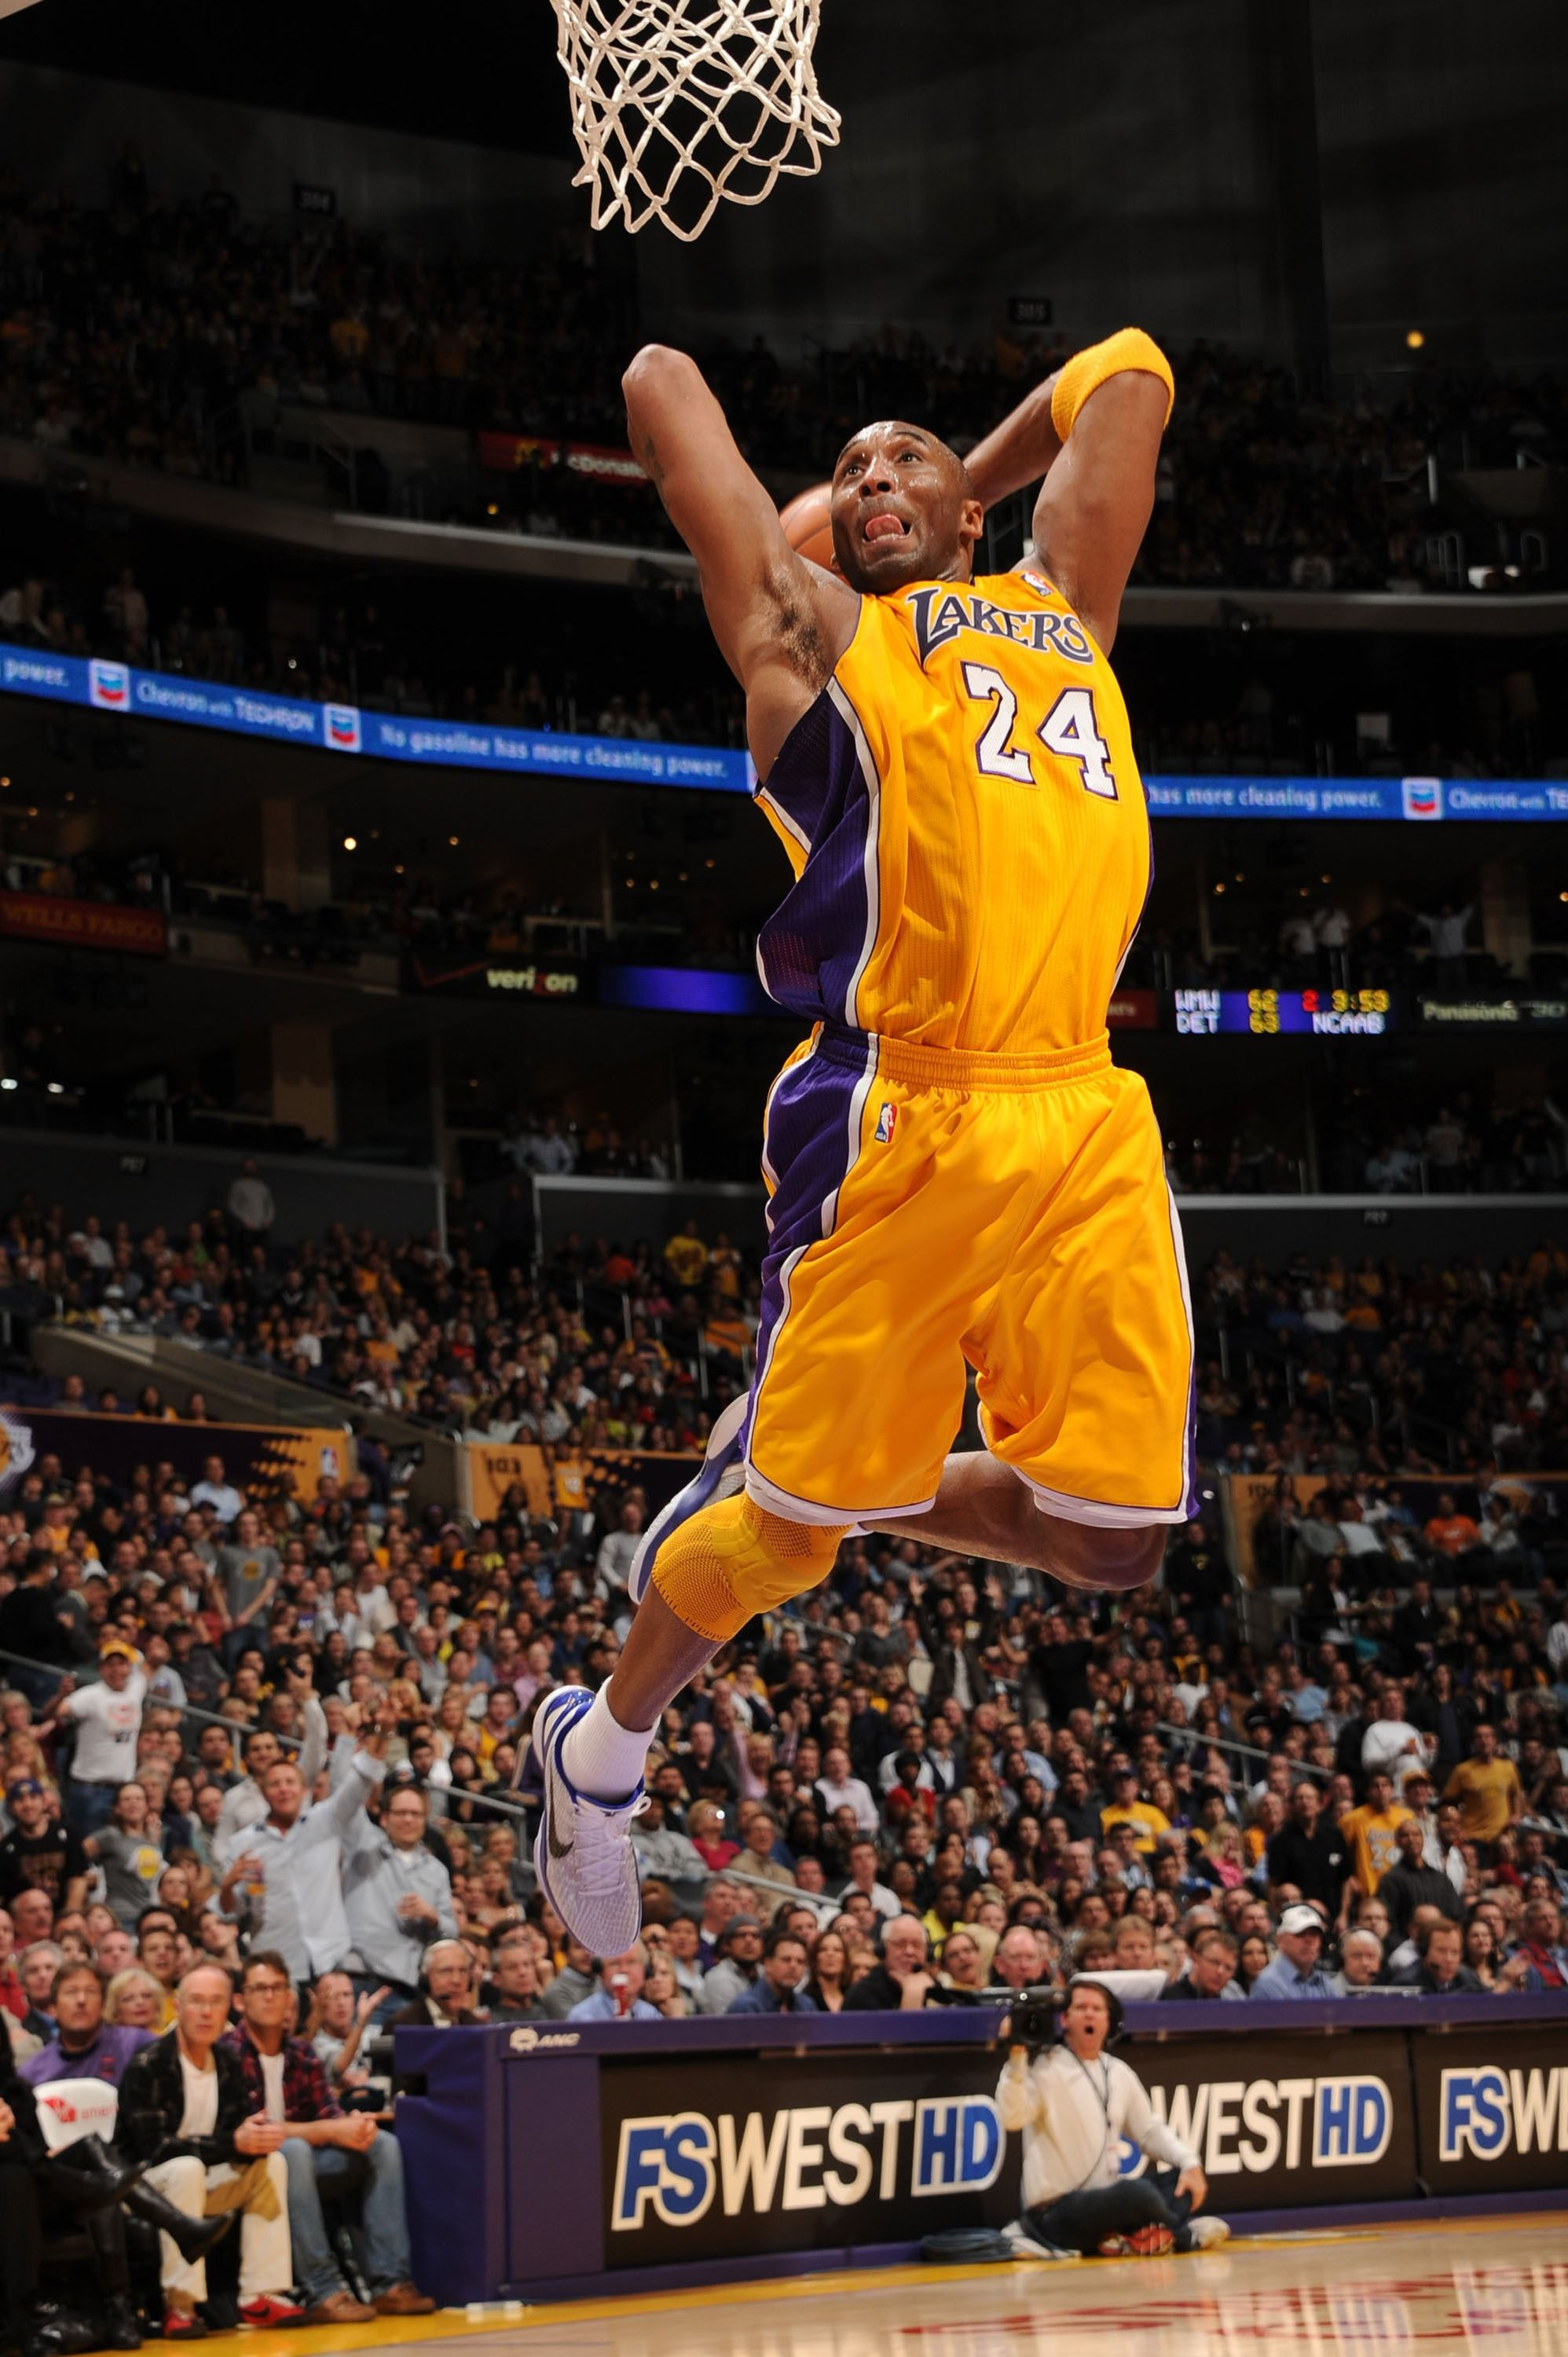 Kobe Bryant #24 of the Los Angeles Lakers goes up for a dunk against the Sacramento Kings at Staples Center. | Source: Getty Images